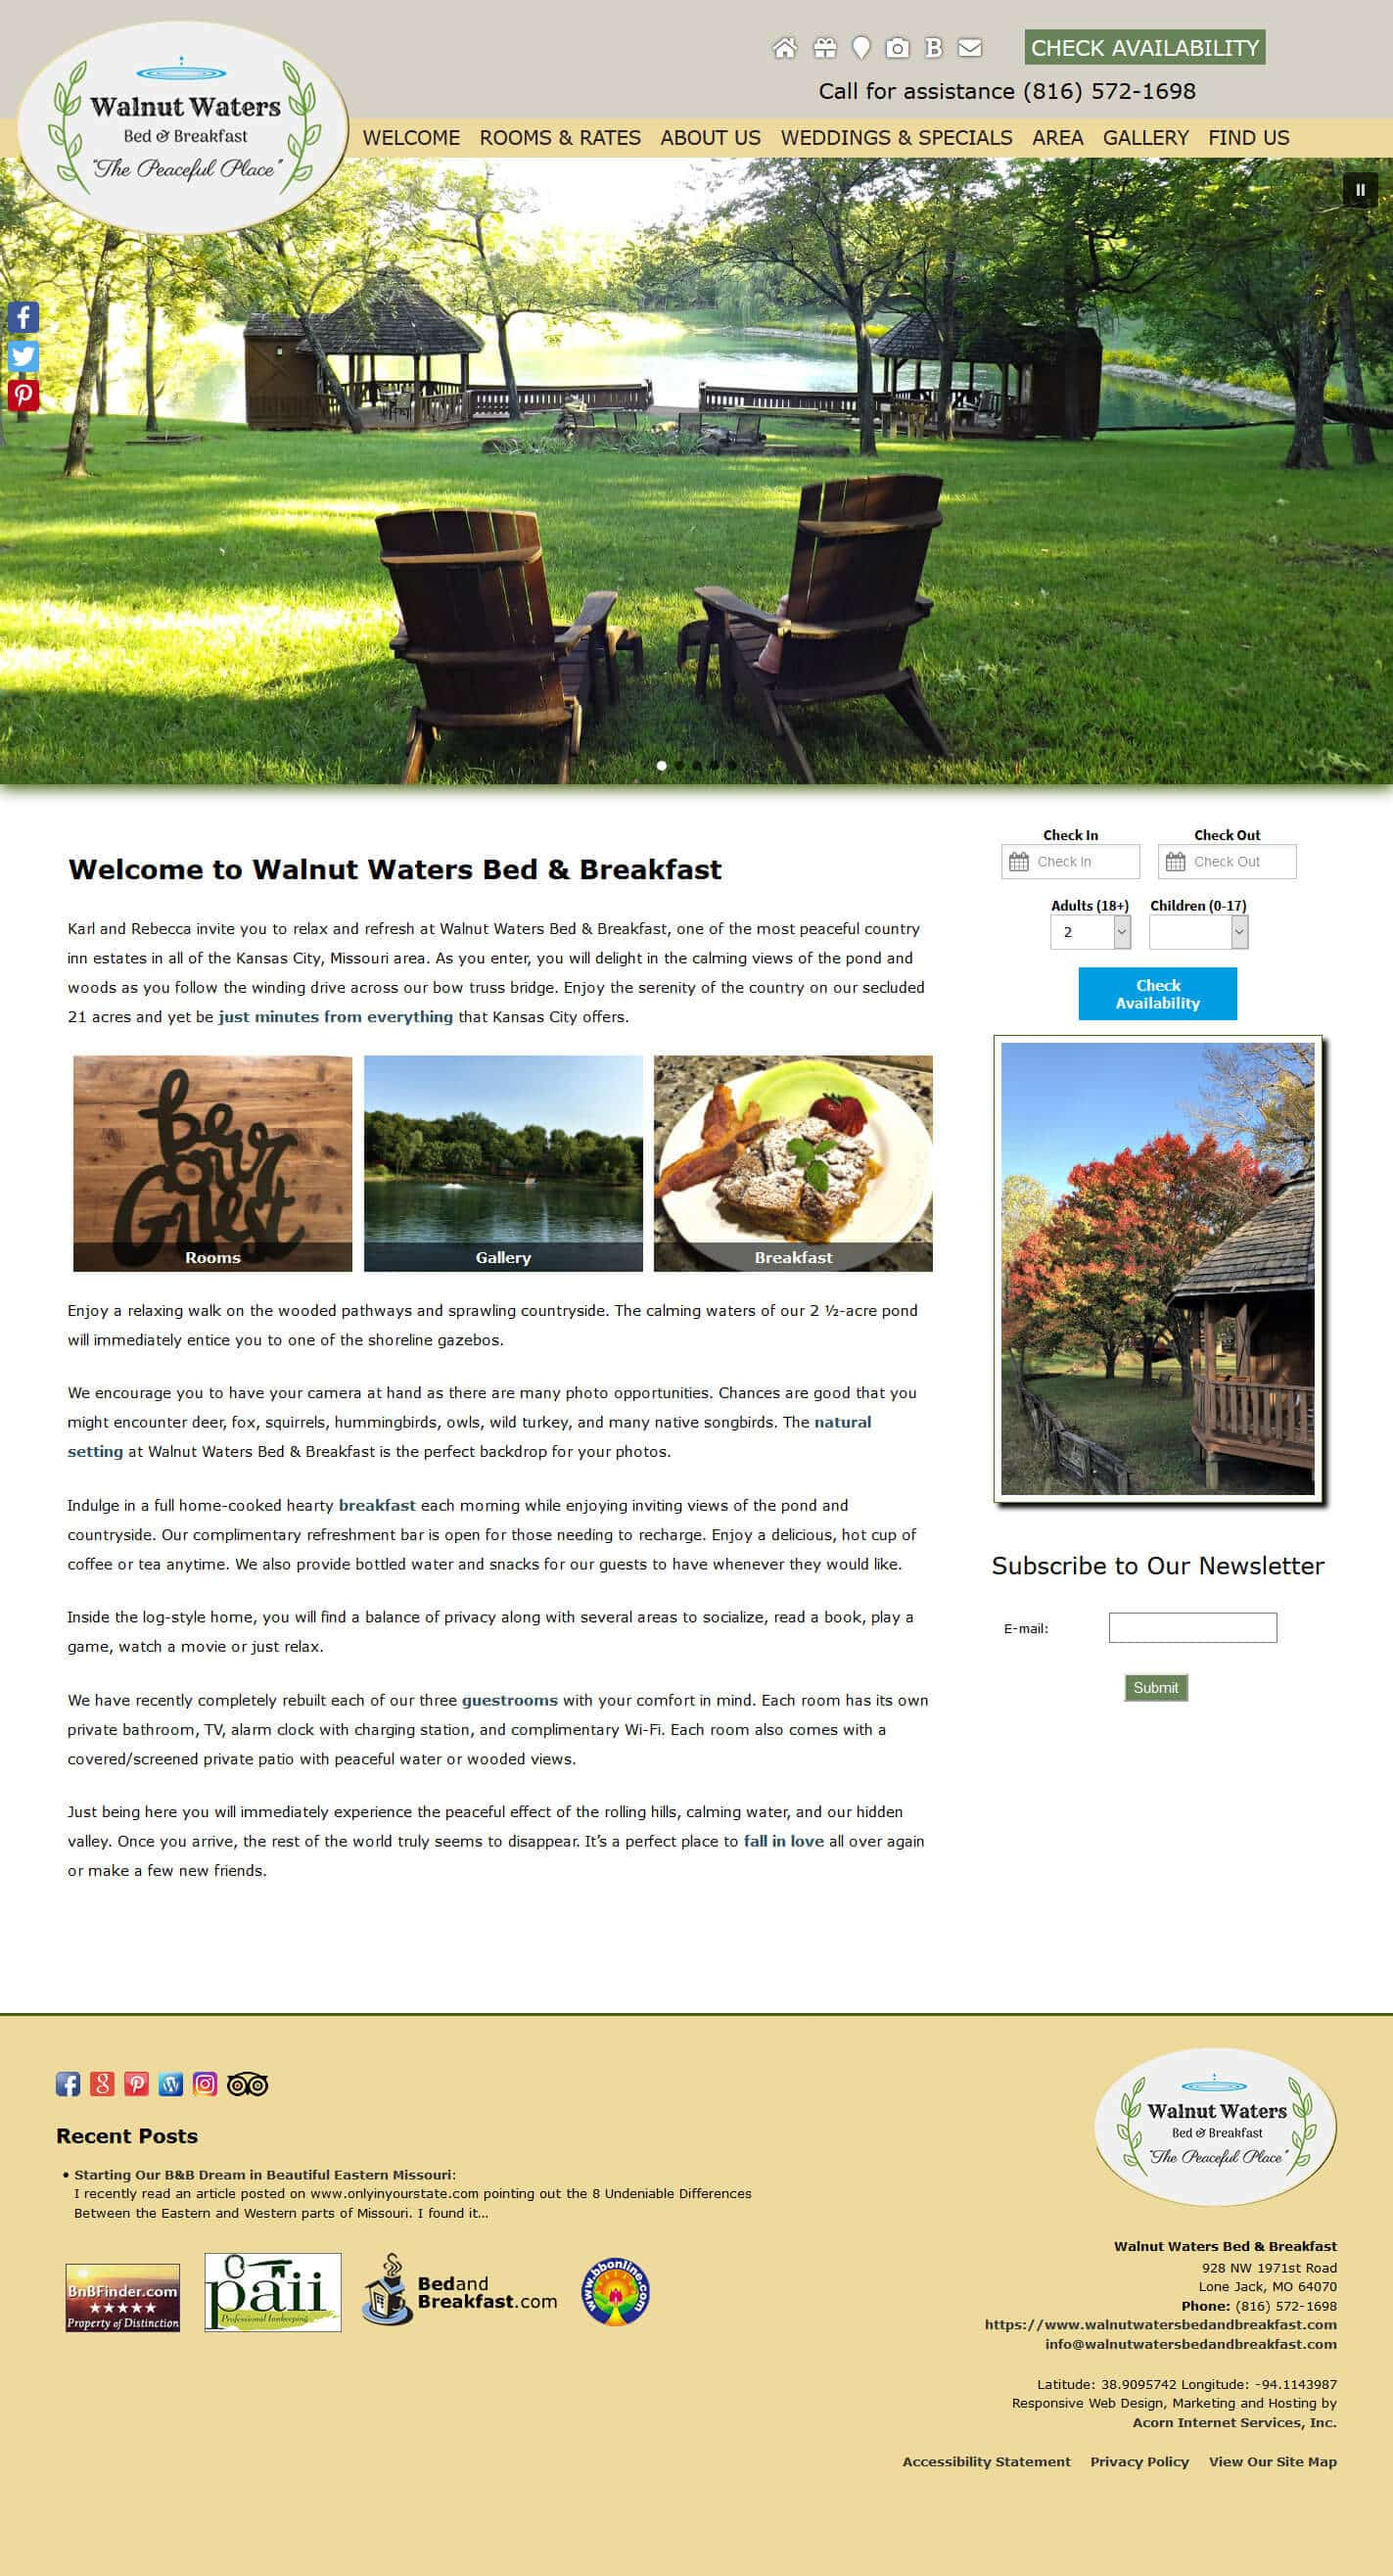 Walnut Waters Bed & Breakfast website home page